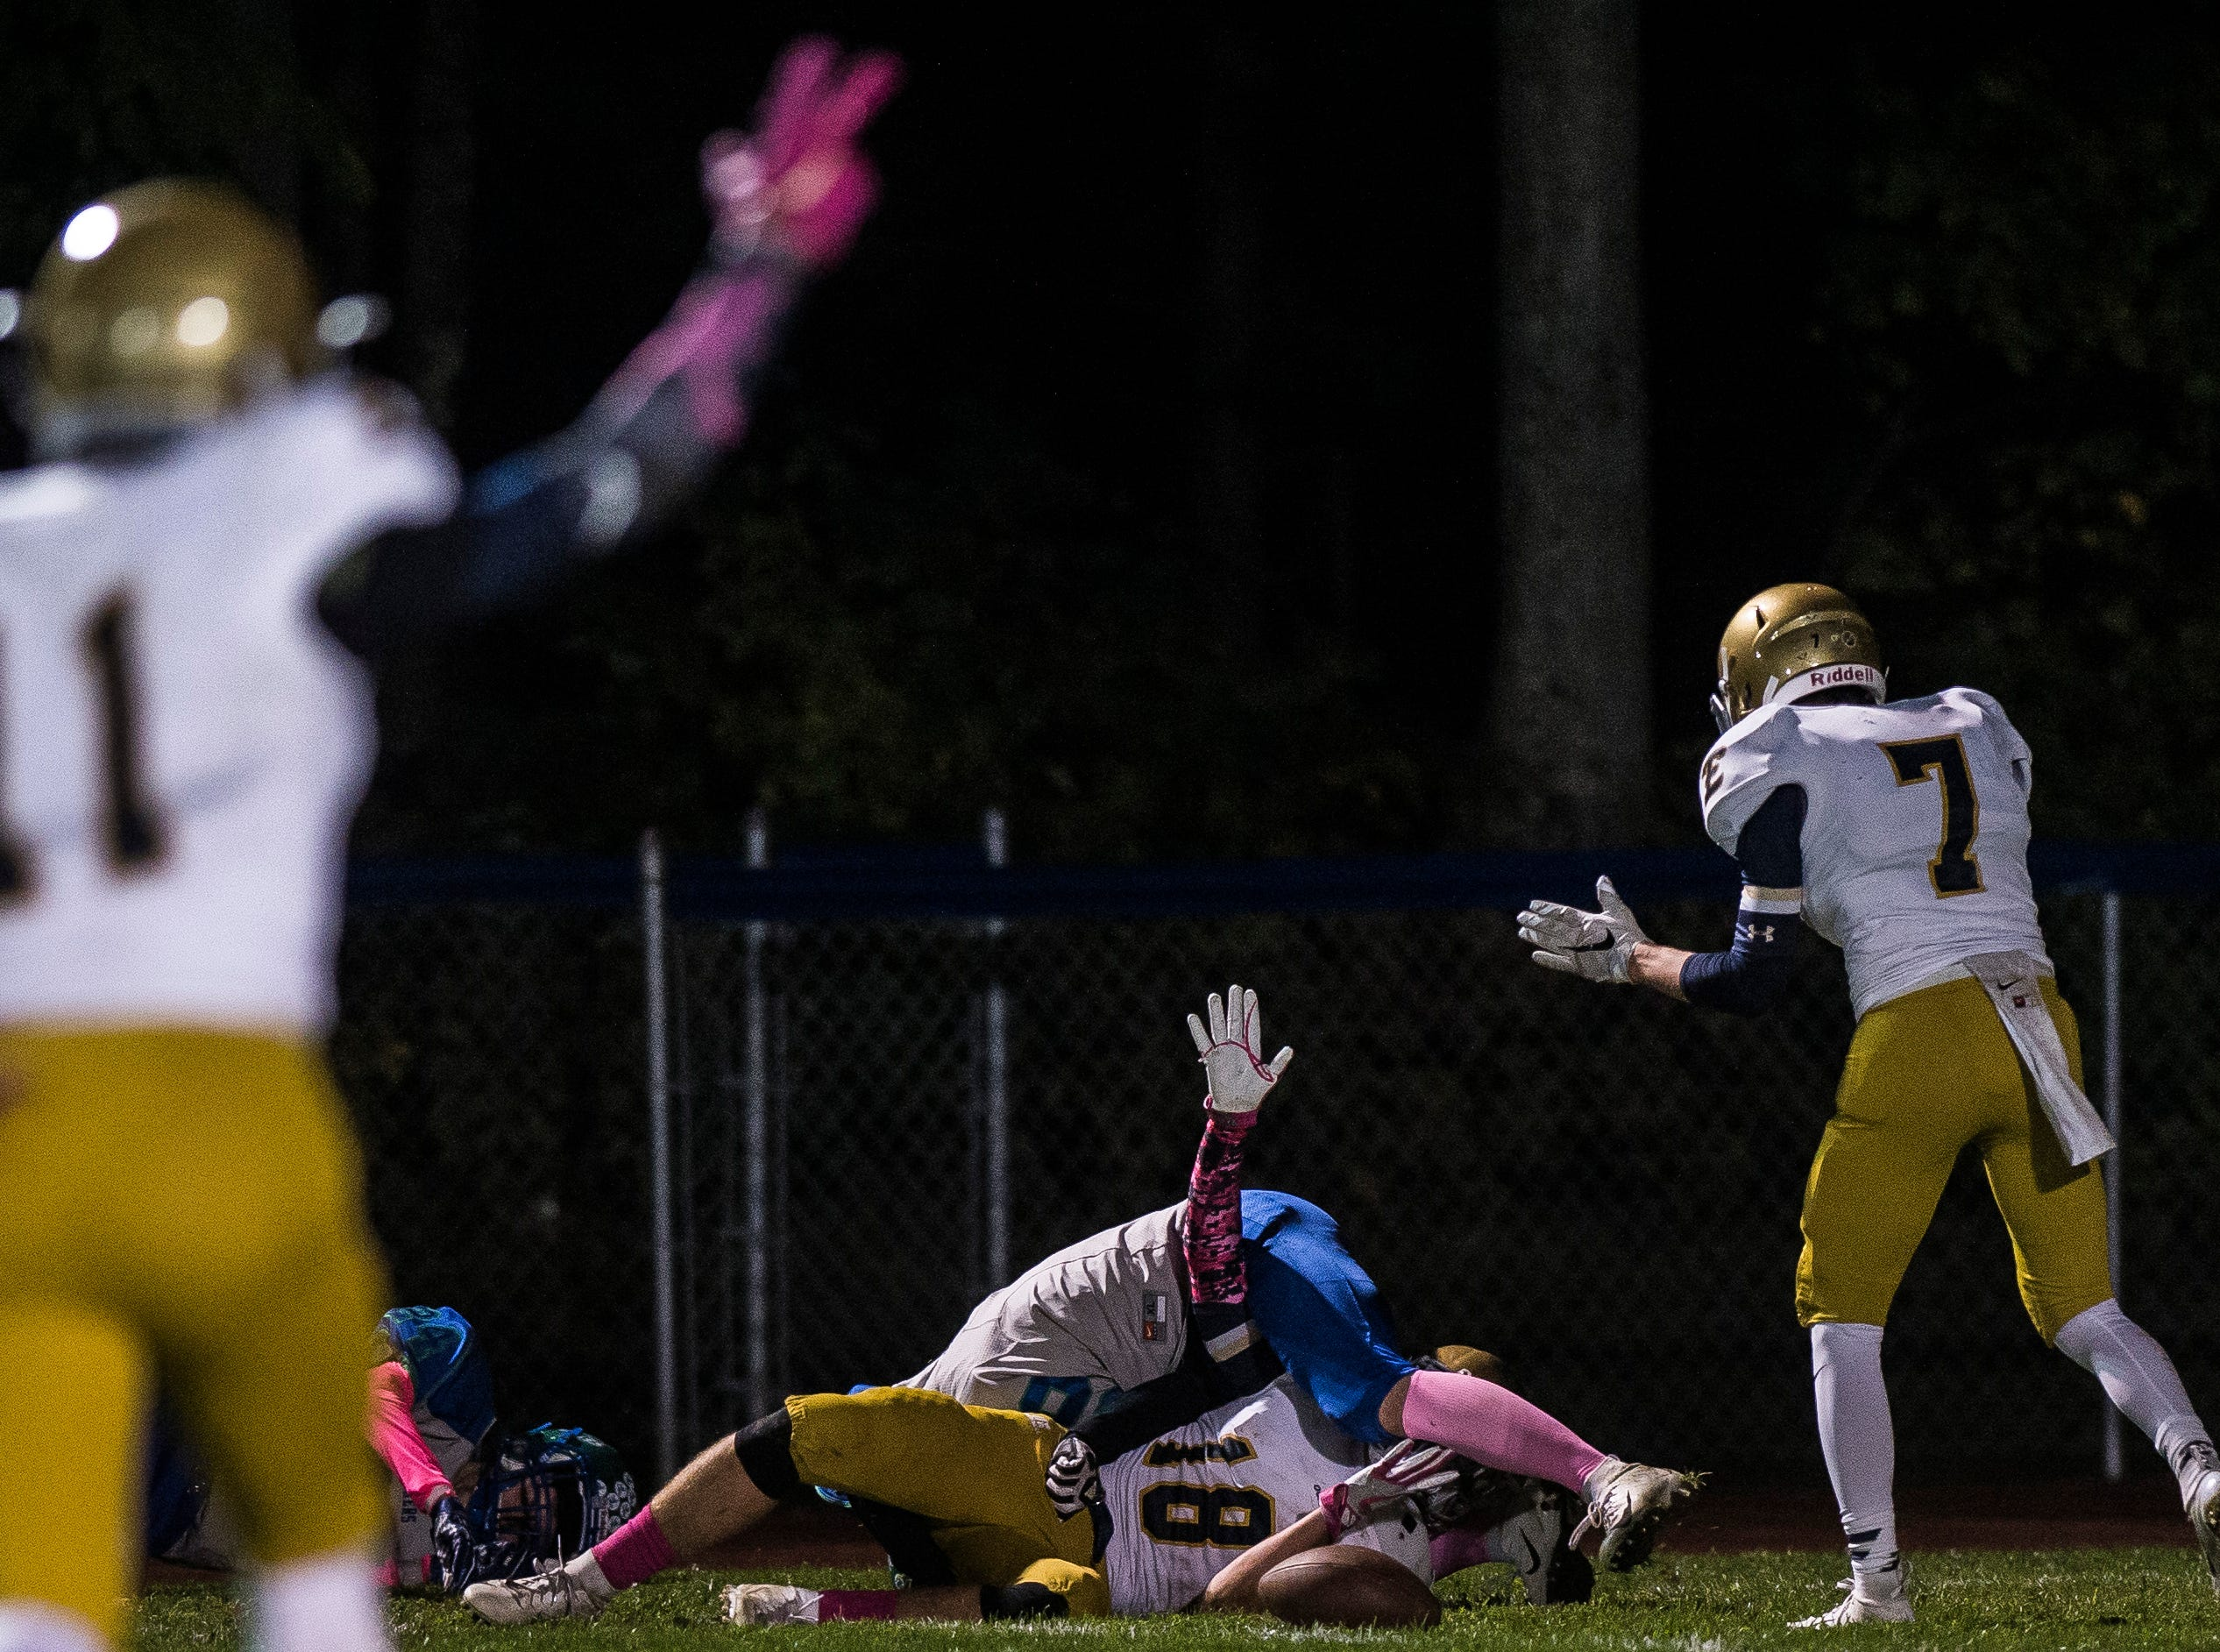 Essex's #18 Luke Williams gives a high five after scoring a touchdown catch during their football game against Colchester on Friday night, Oct. 5, 2018, at Colchester High School. The Lakers won, 28-7.